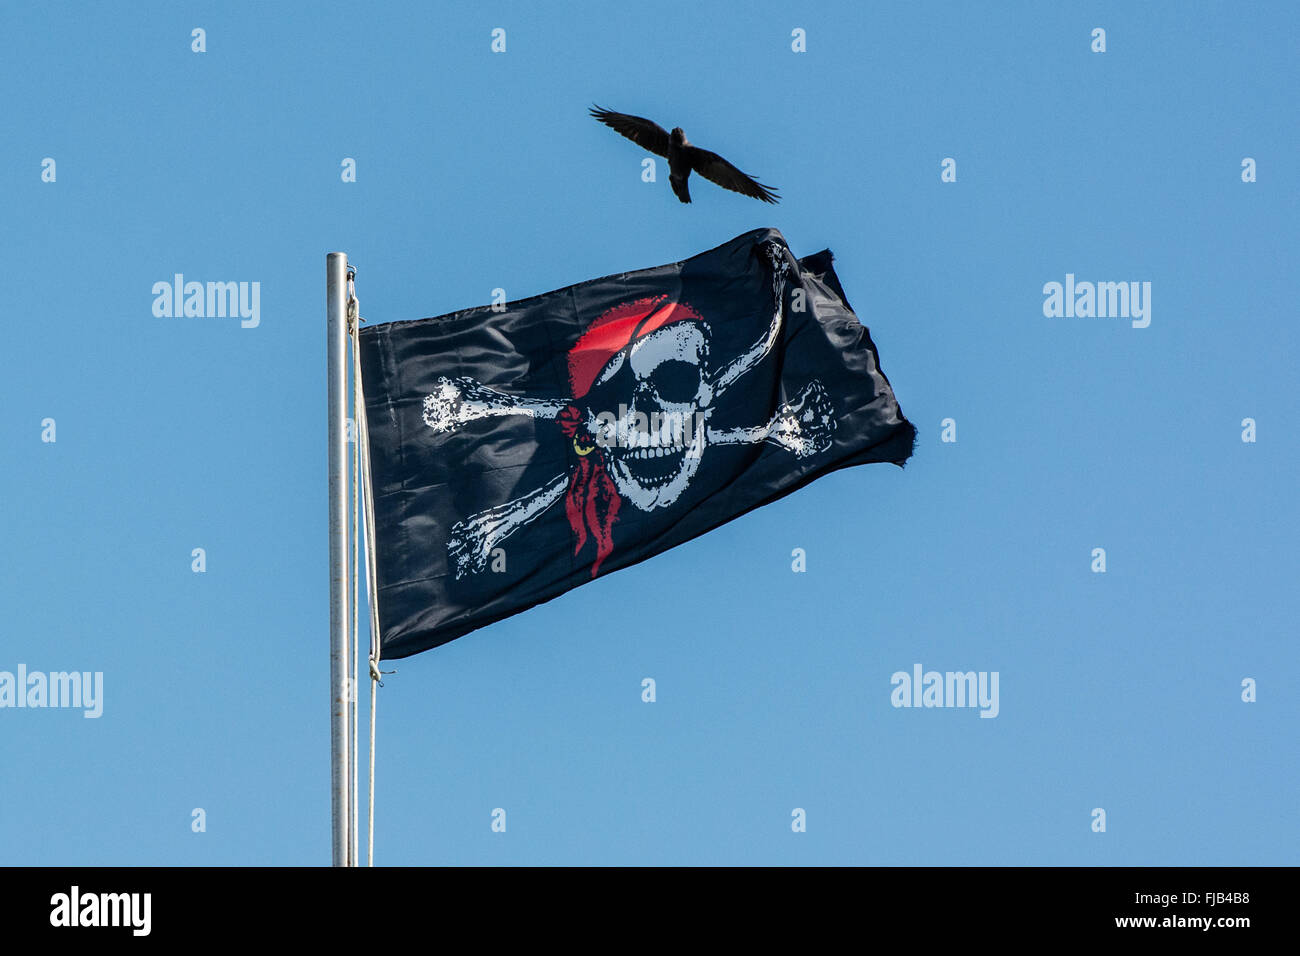 Pirate jolly roger flag flying on flag pole with crow flying - Stock Image